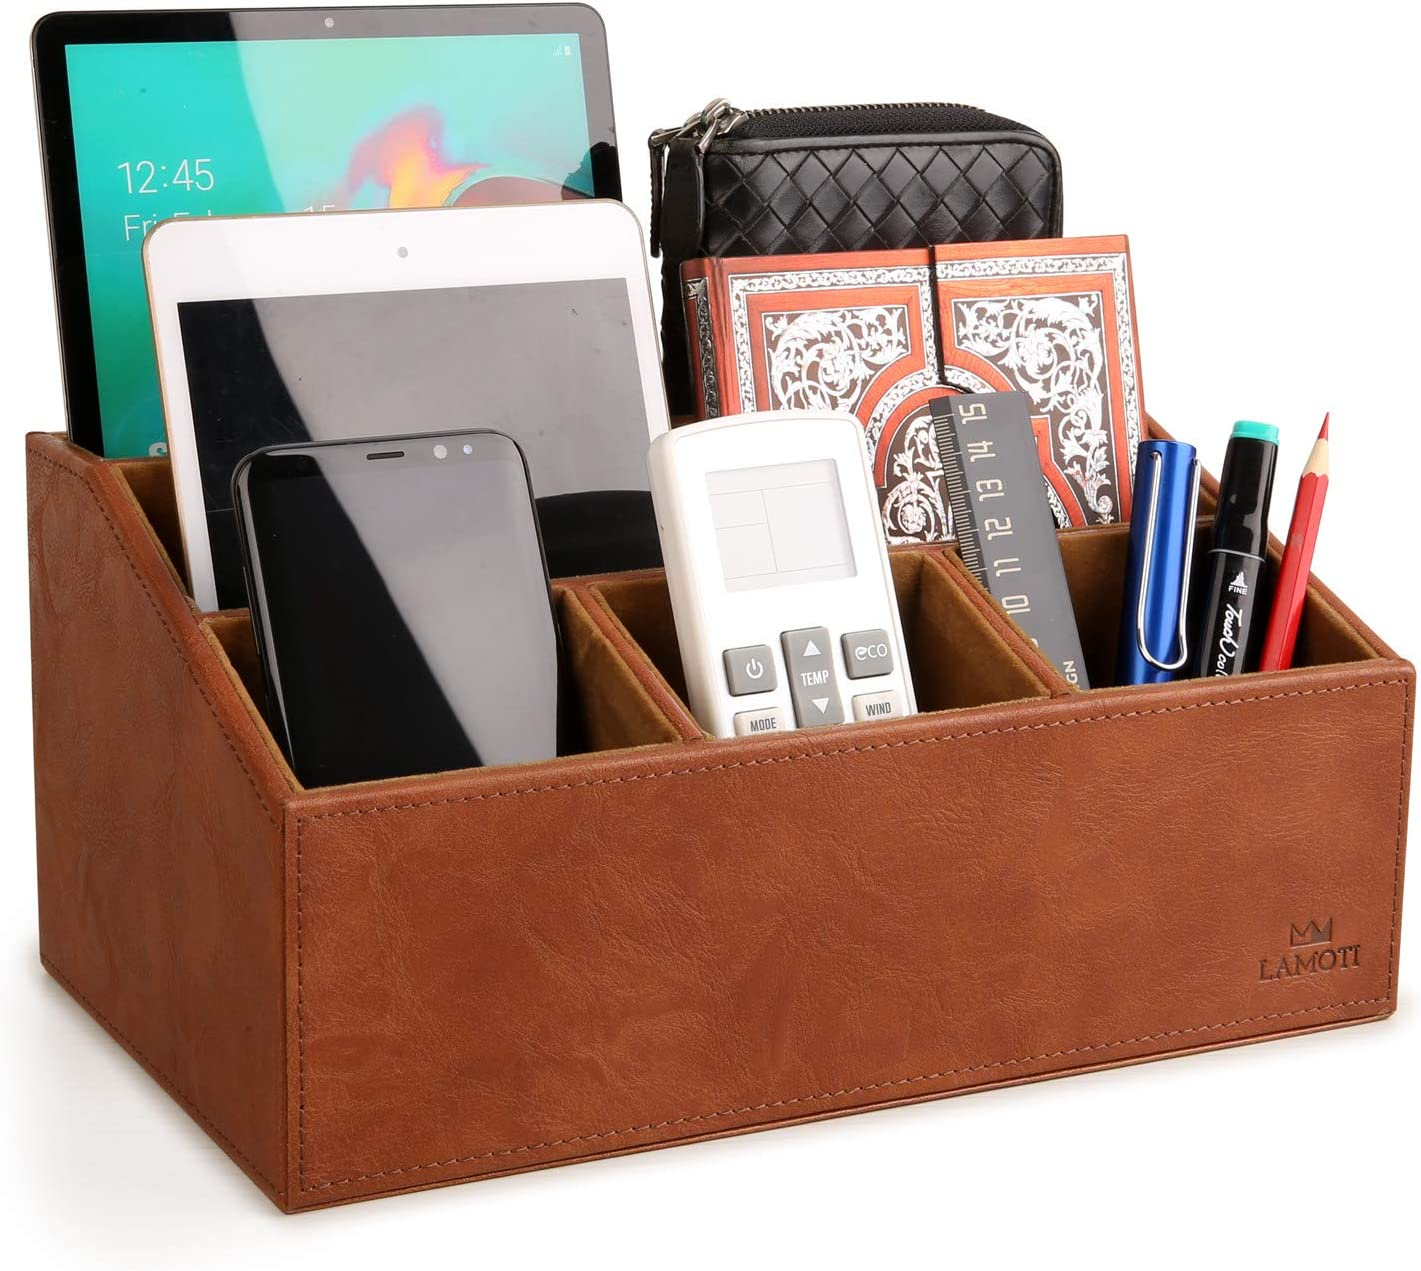 "LAMOTI Leather Desk Organizer with a 4"" Coaster, Large Capacity 5 Compartments Desktop Unifier, Handcrafted (Brown)"